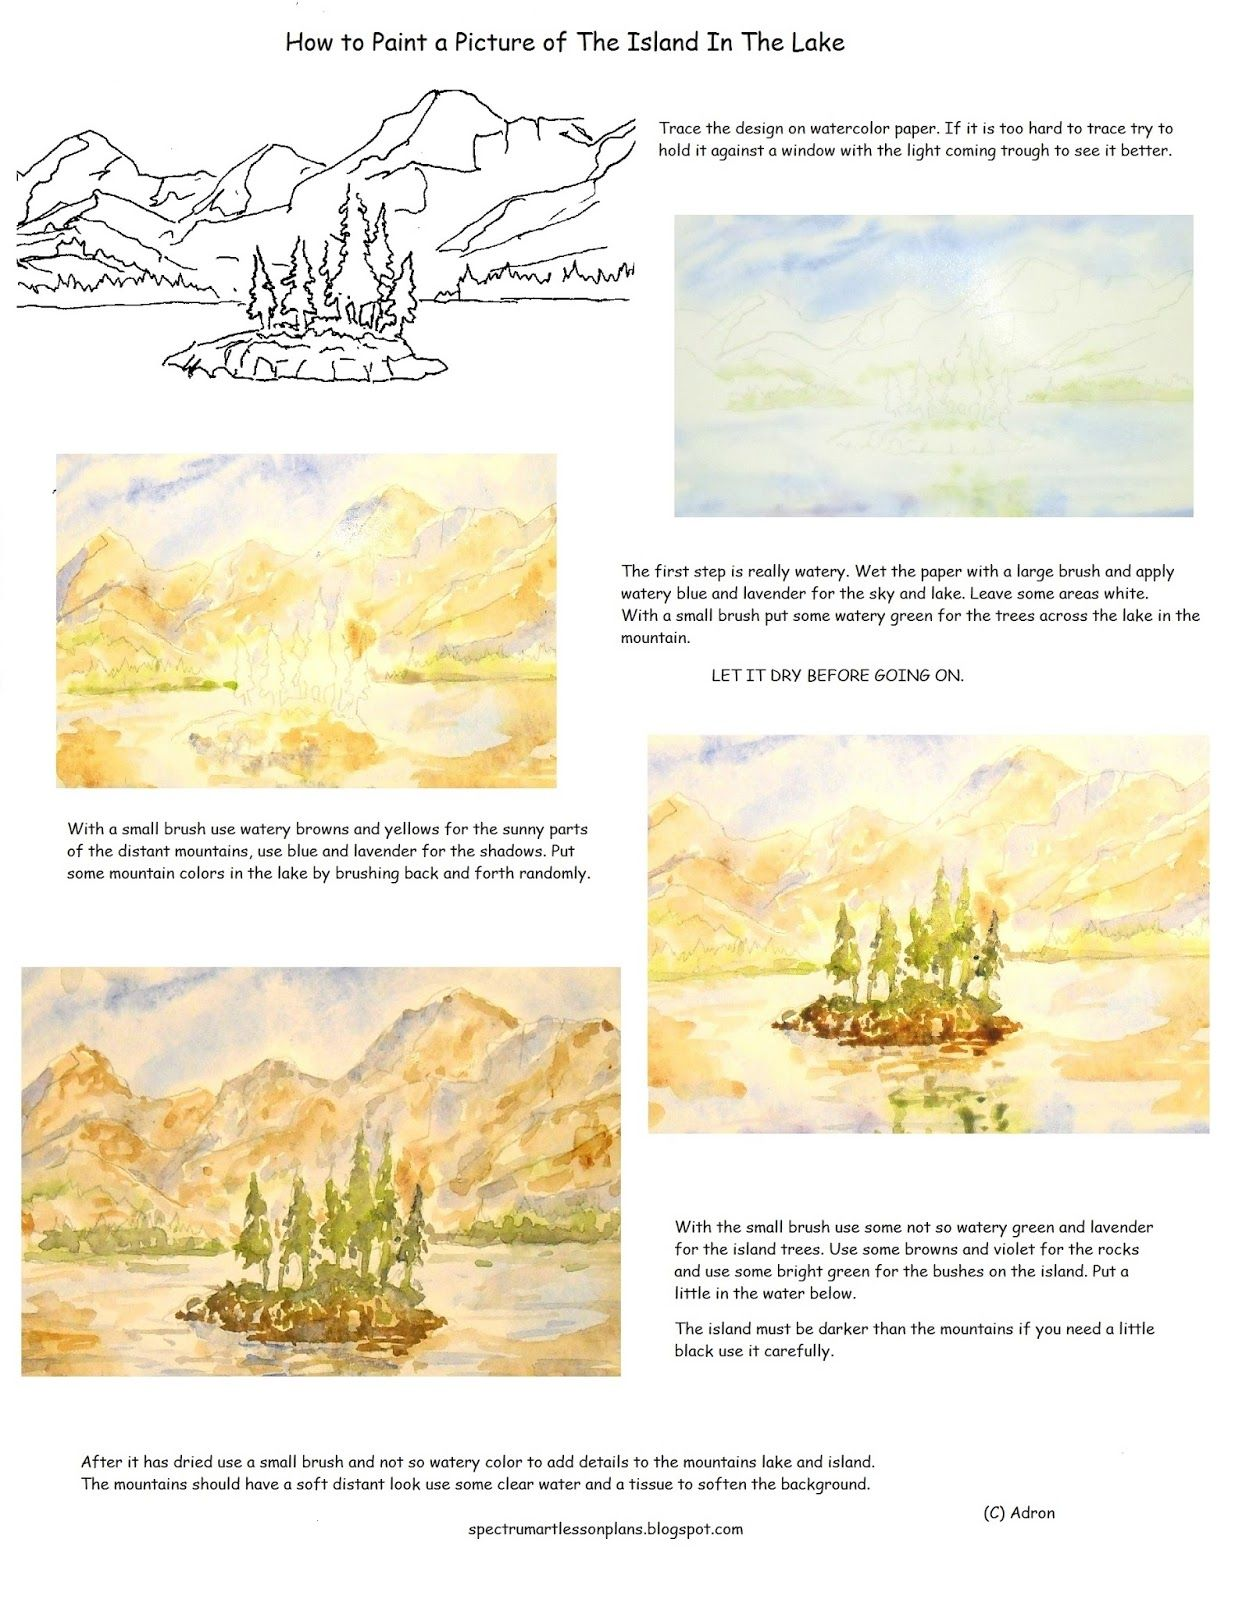 How To Paint A Picture Of An Island In The Lake